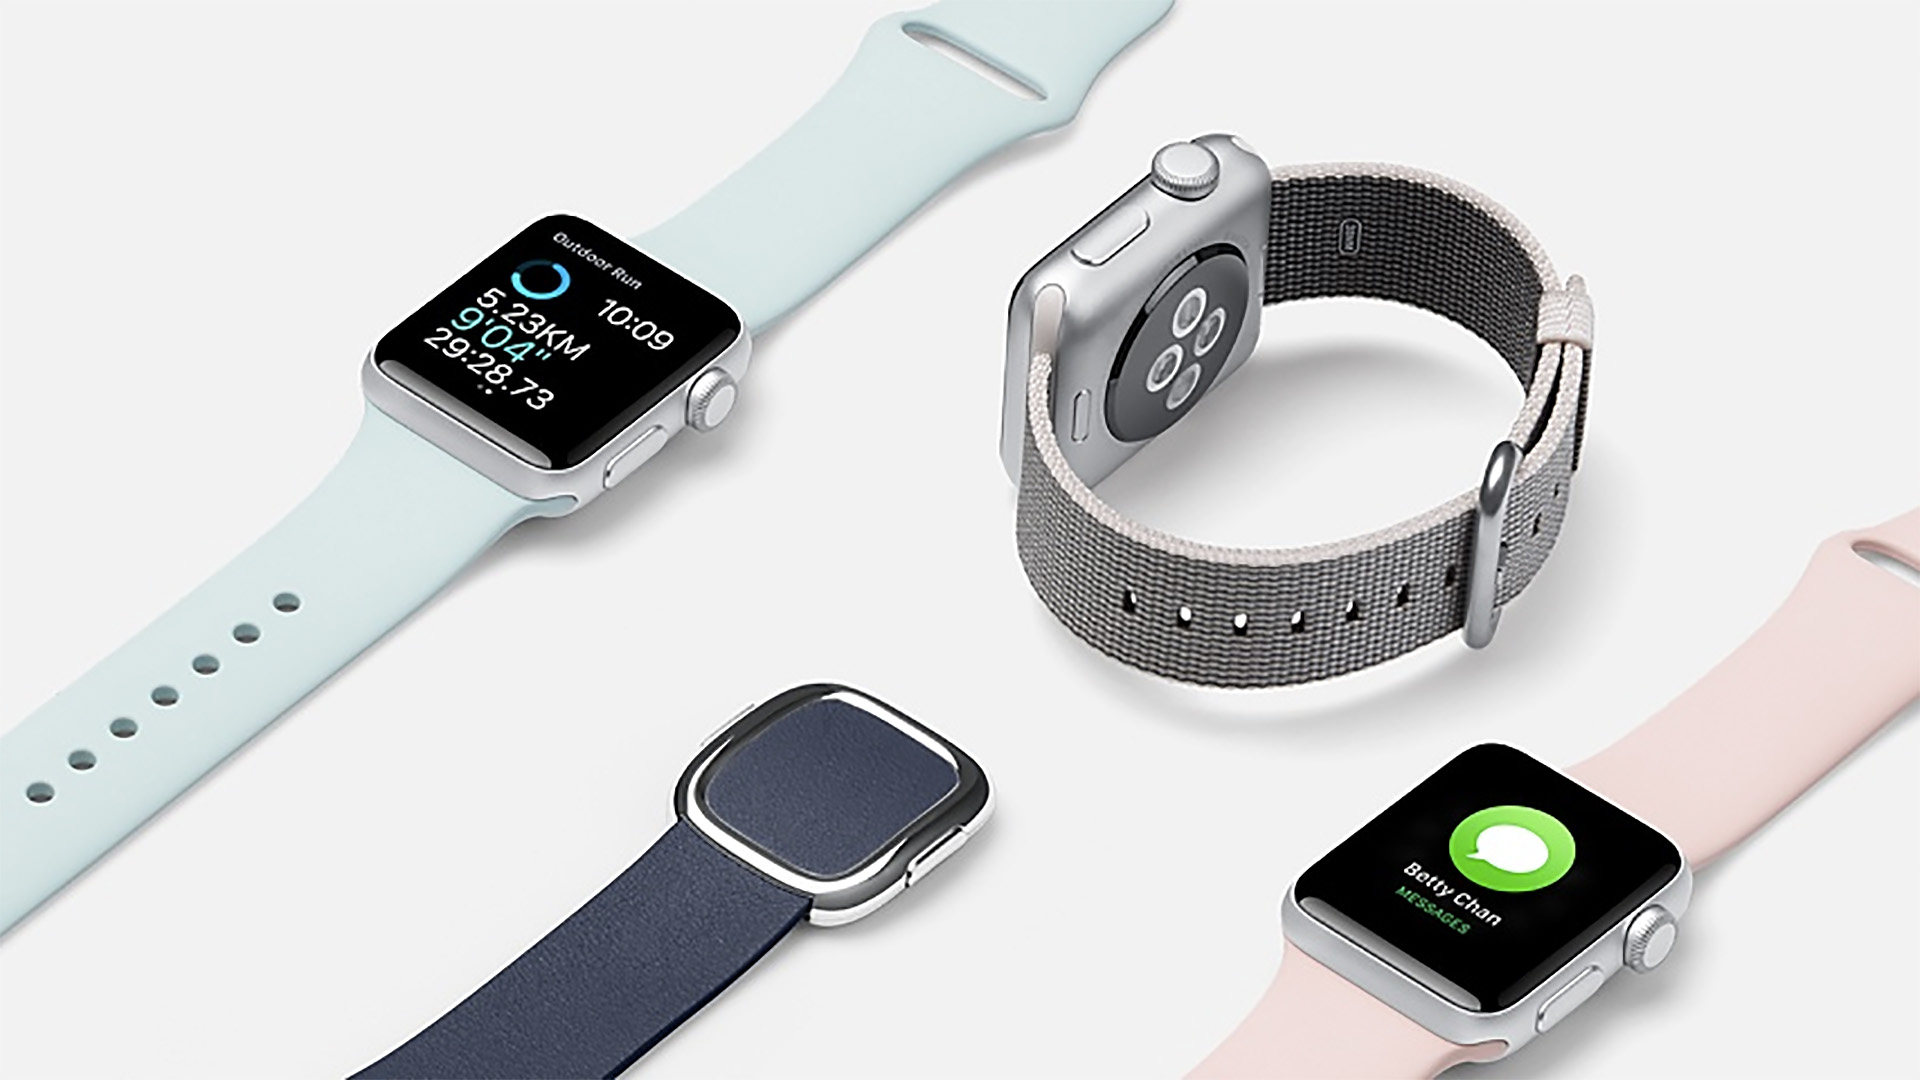 Permalink to Comparativa: Apple Watch Series 3 vs Apple Watch Series 2